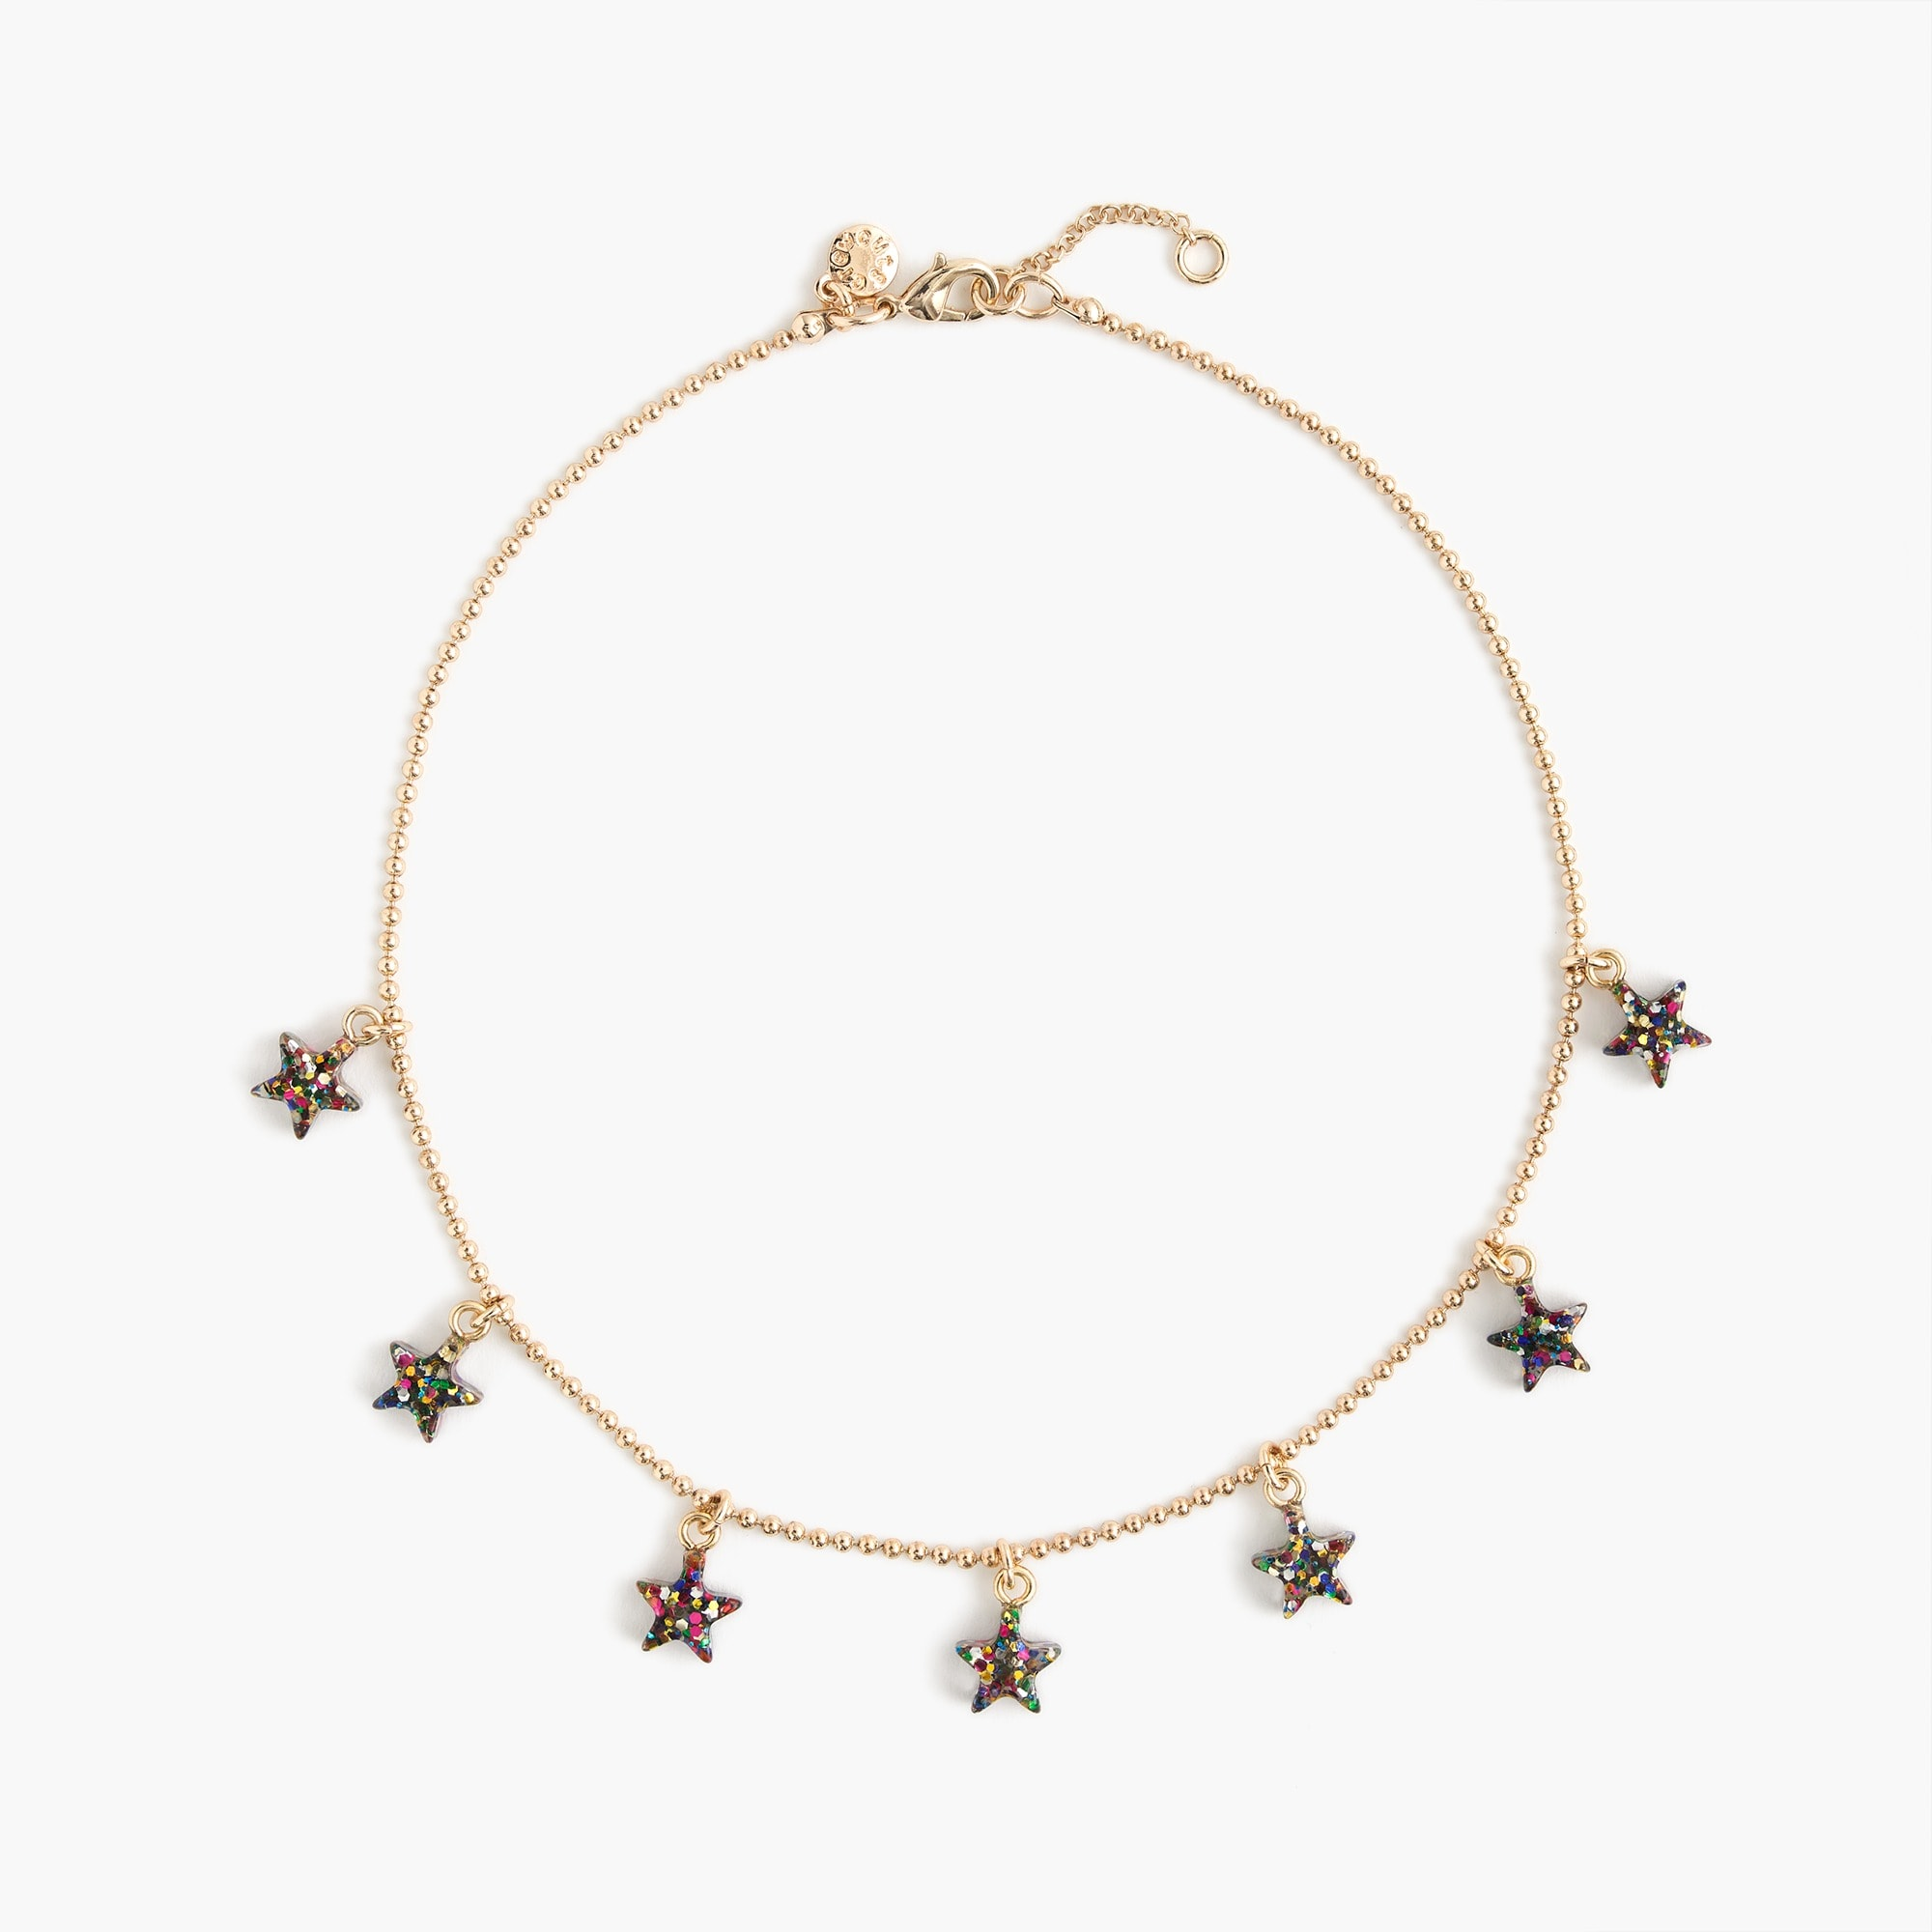 girls Girls' choker necklace with glitter stars